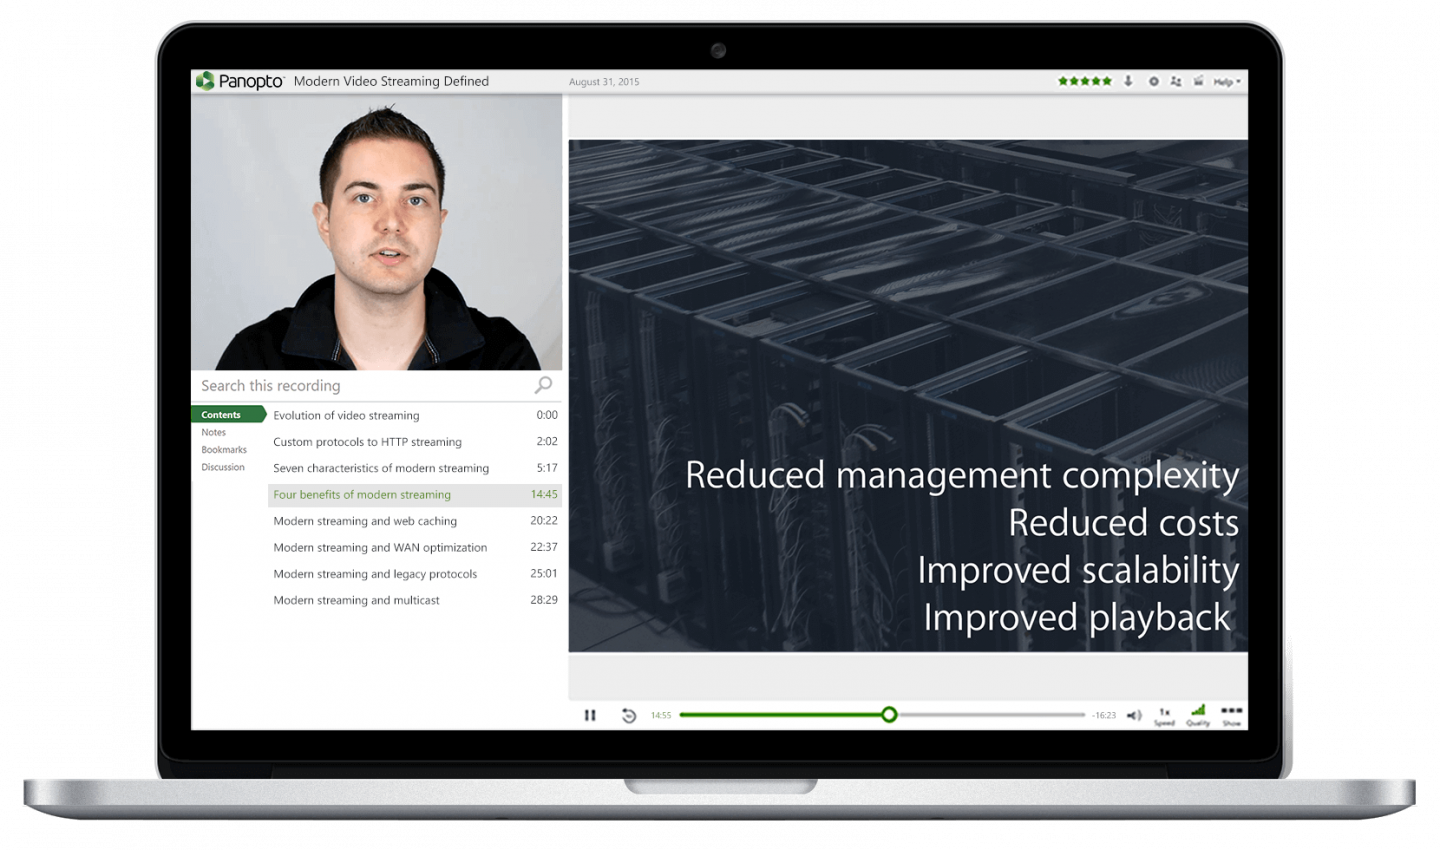 Panopto's HLS video streaming protocols support video streaming at scale on your WAN